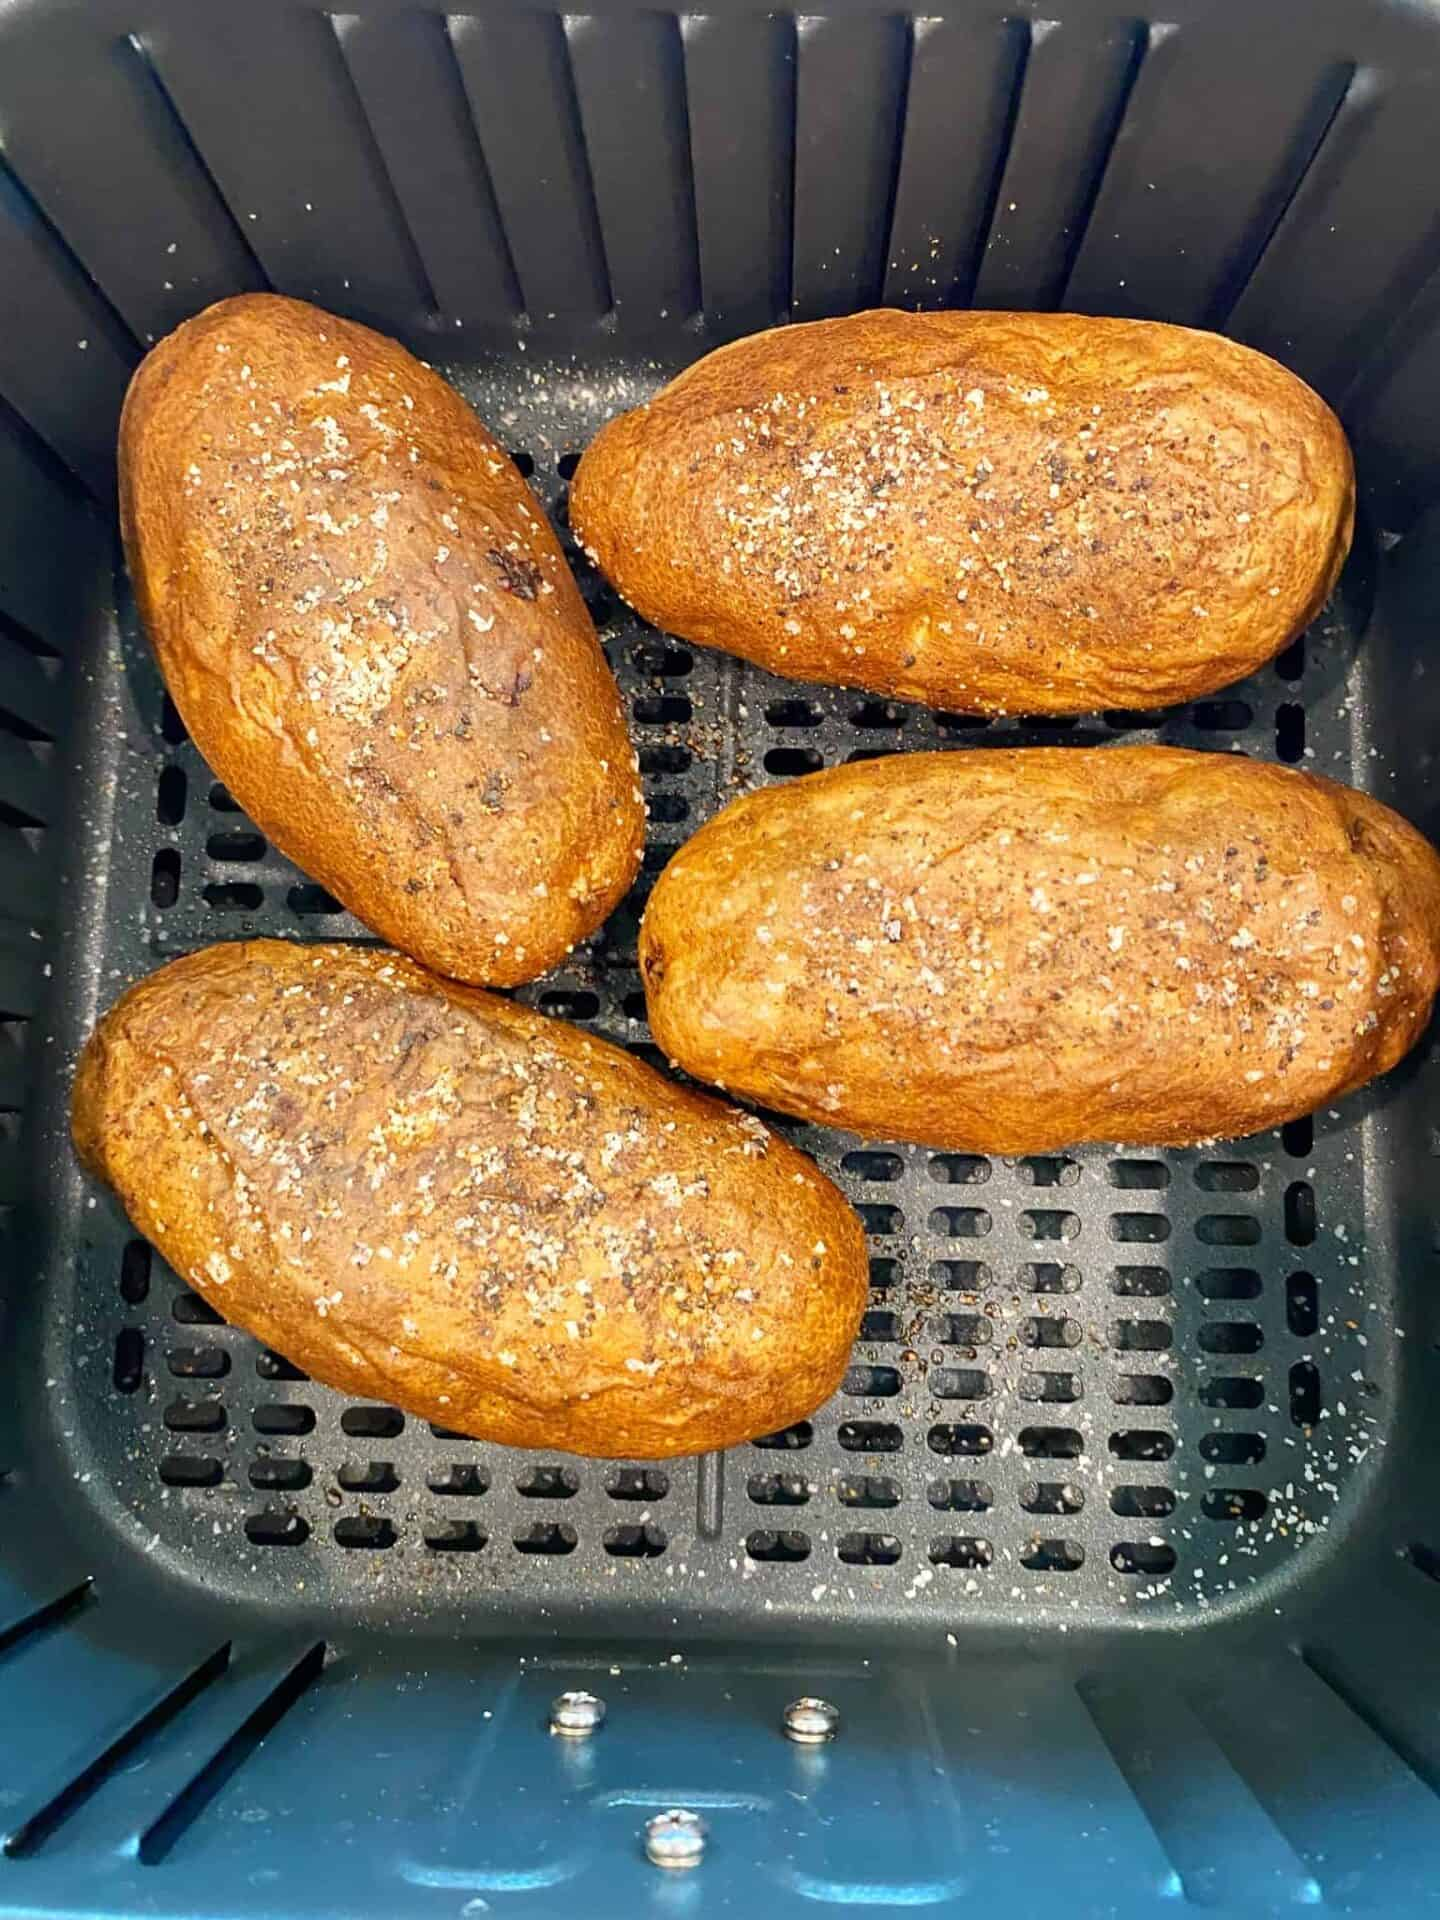 twice-baked-potatoes-air-fryer-cooked